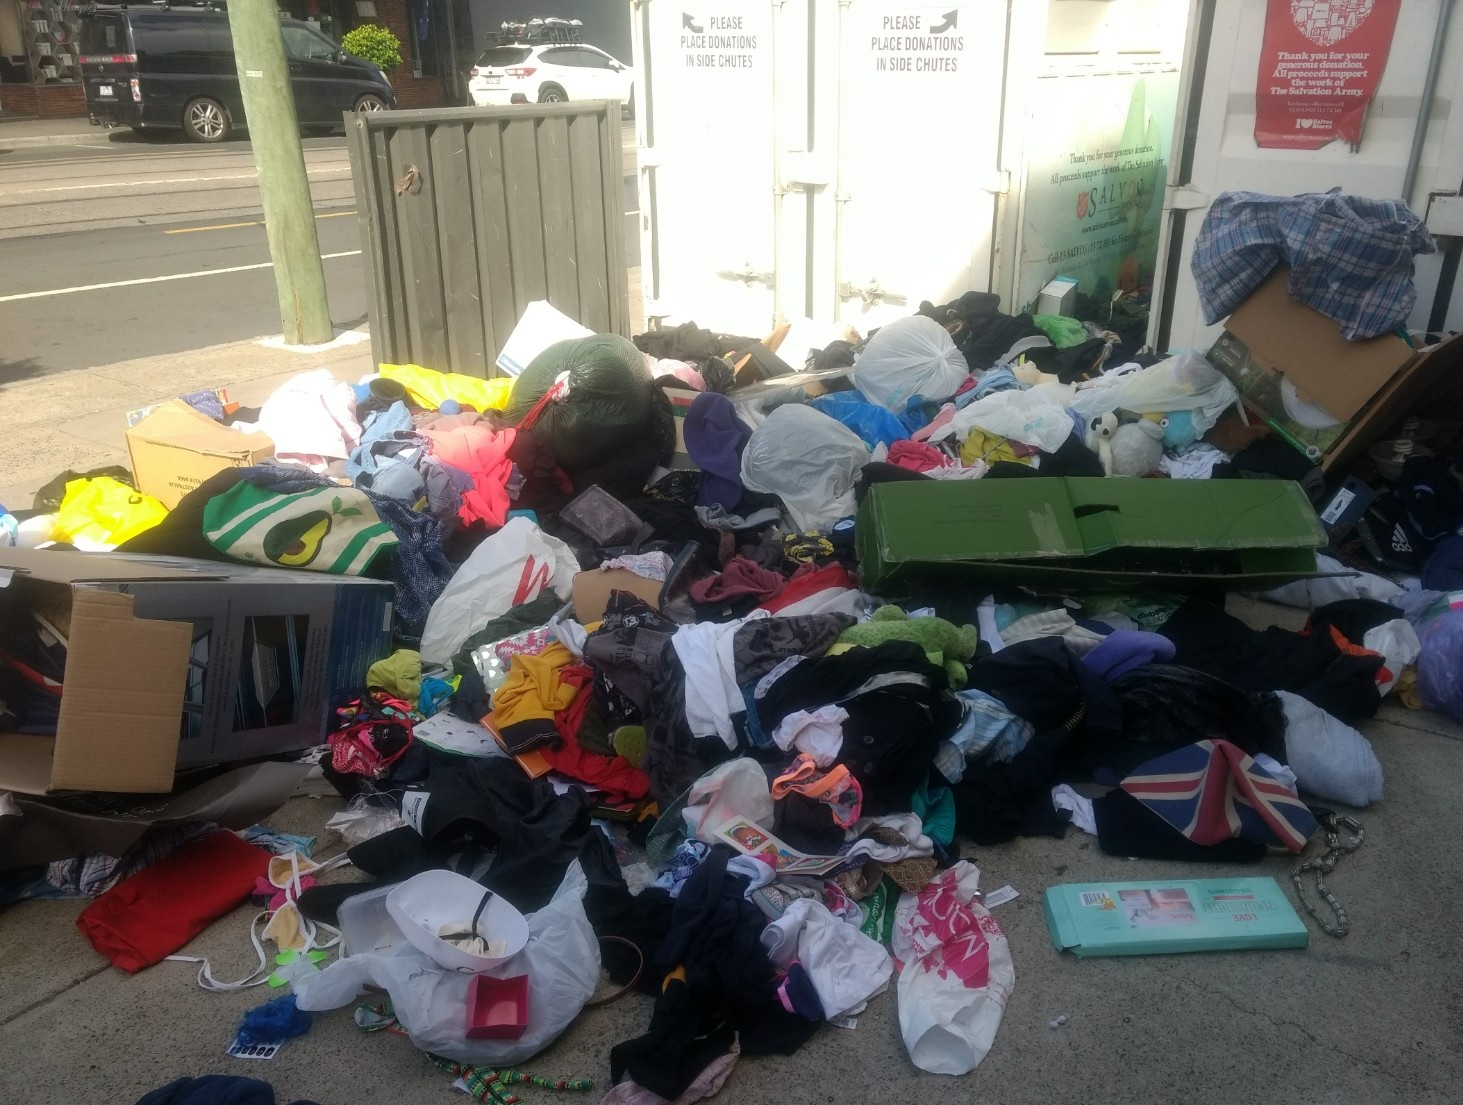 The scene of our conversation. Imagine arriving to volunteer to clear this up every day. Image Source - My own - unfortunately.